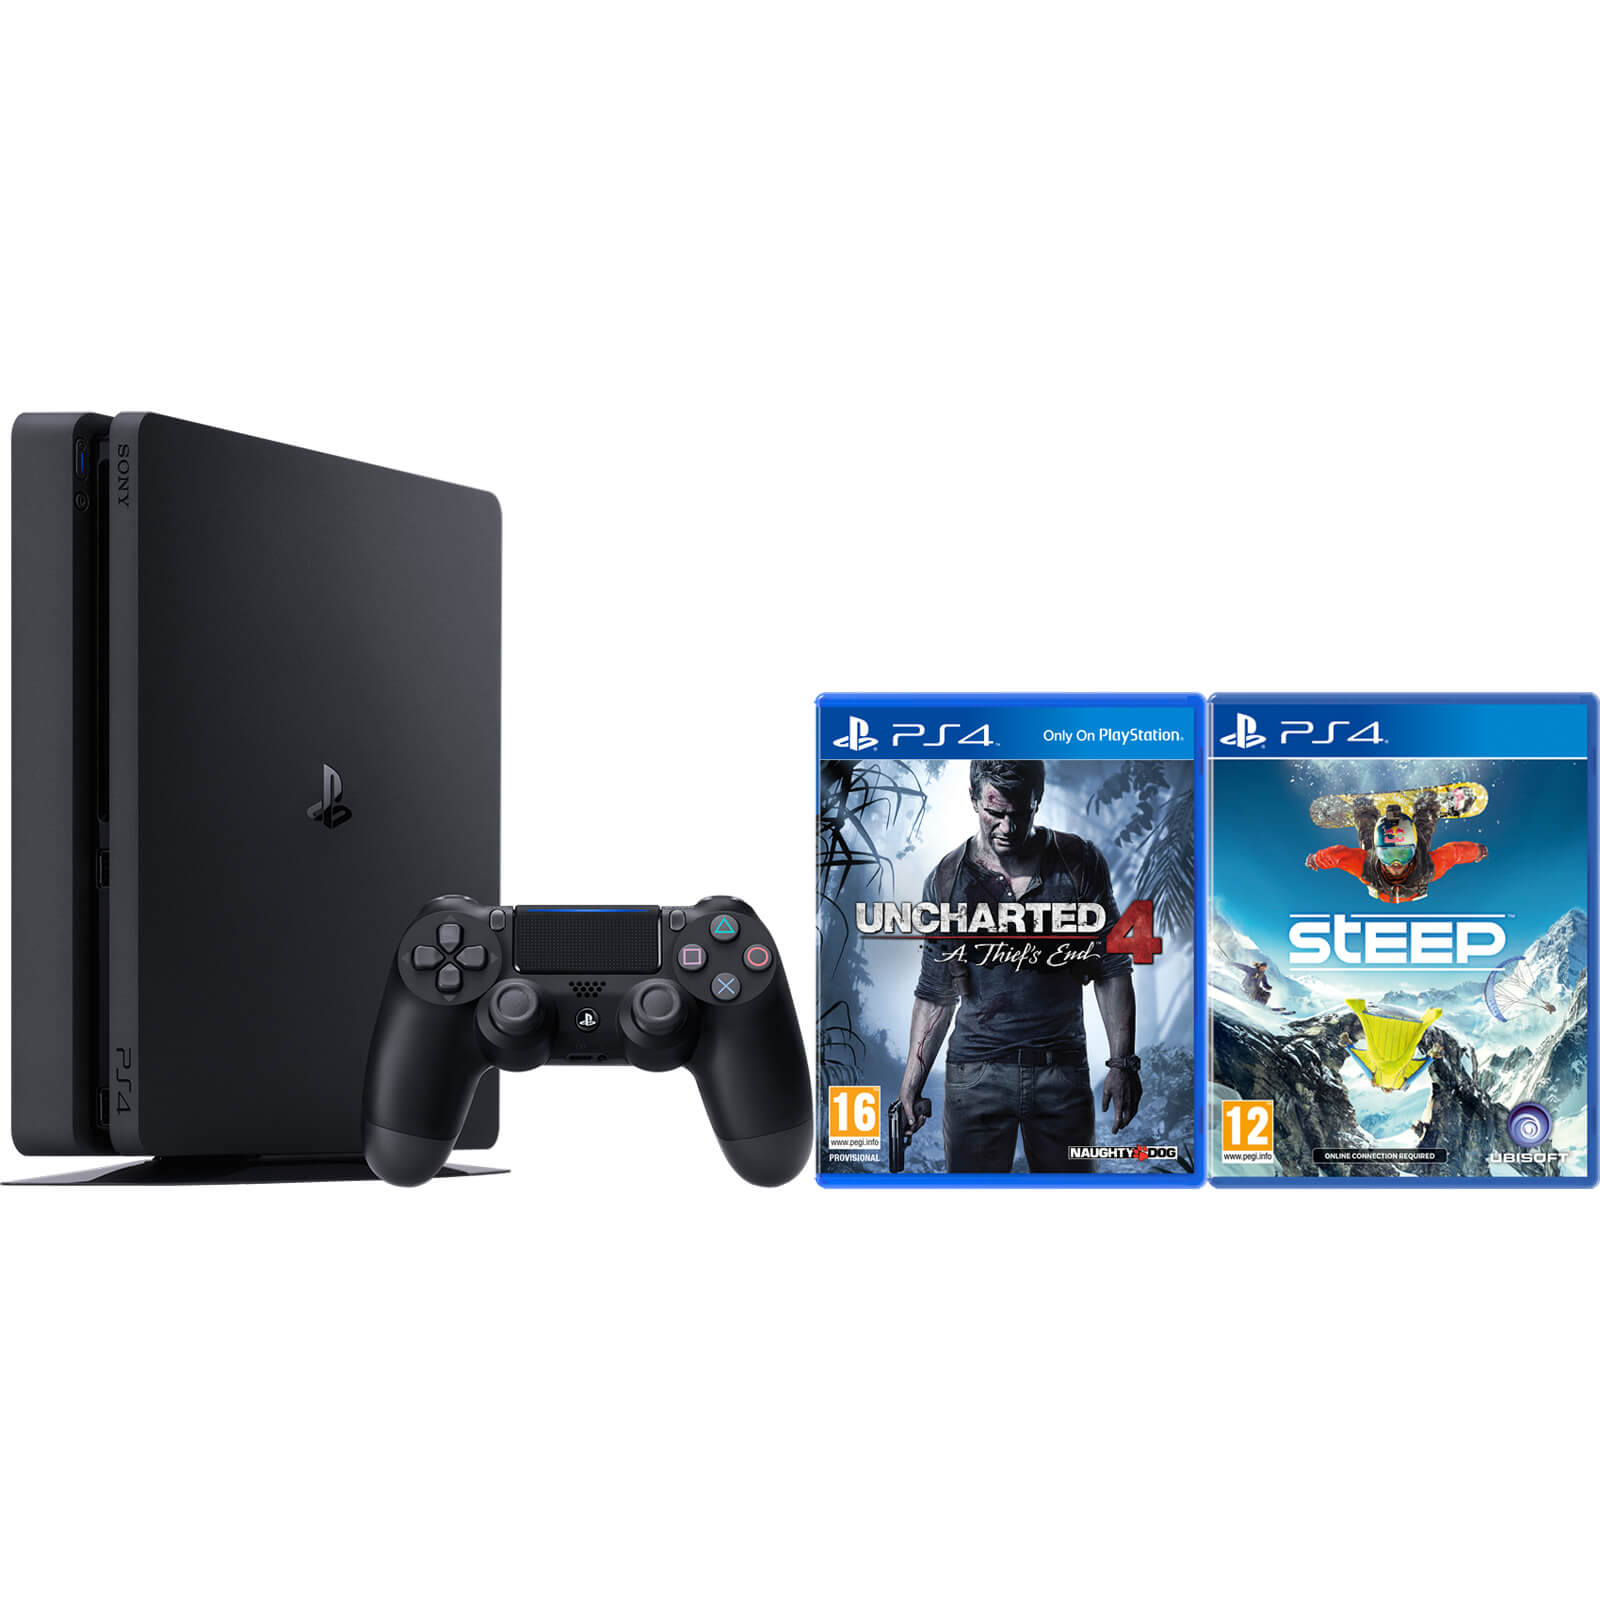 Playstation 4 Slim 500gb Console Includes Uncharted 4 And Steep